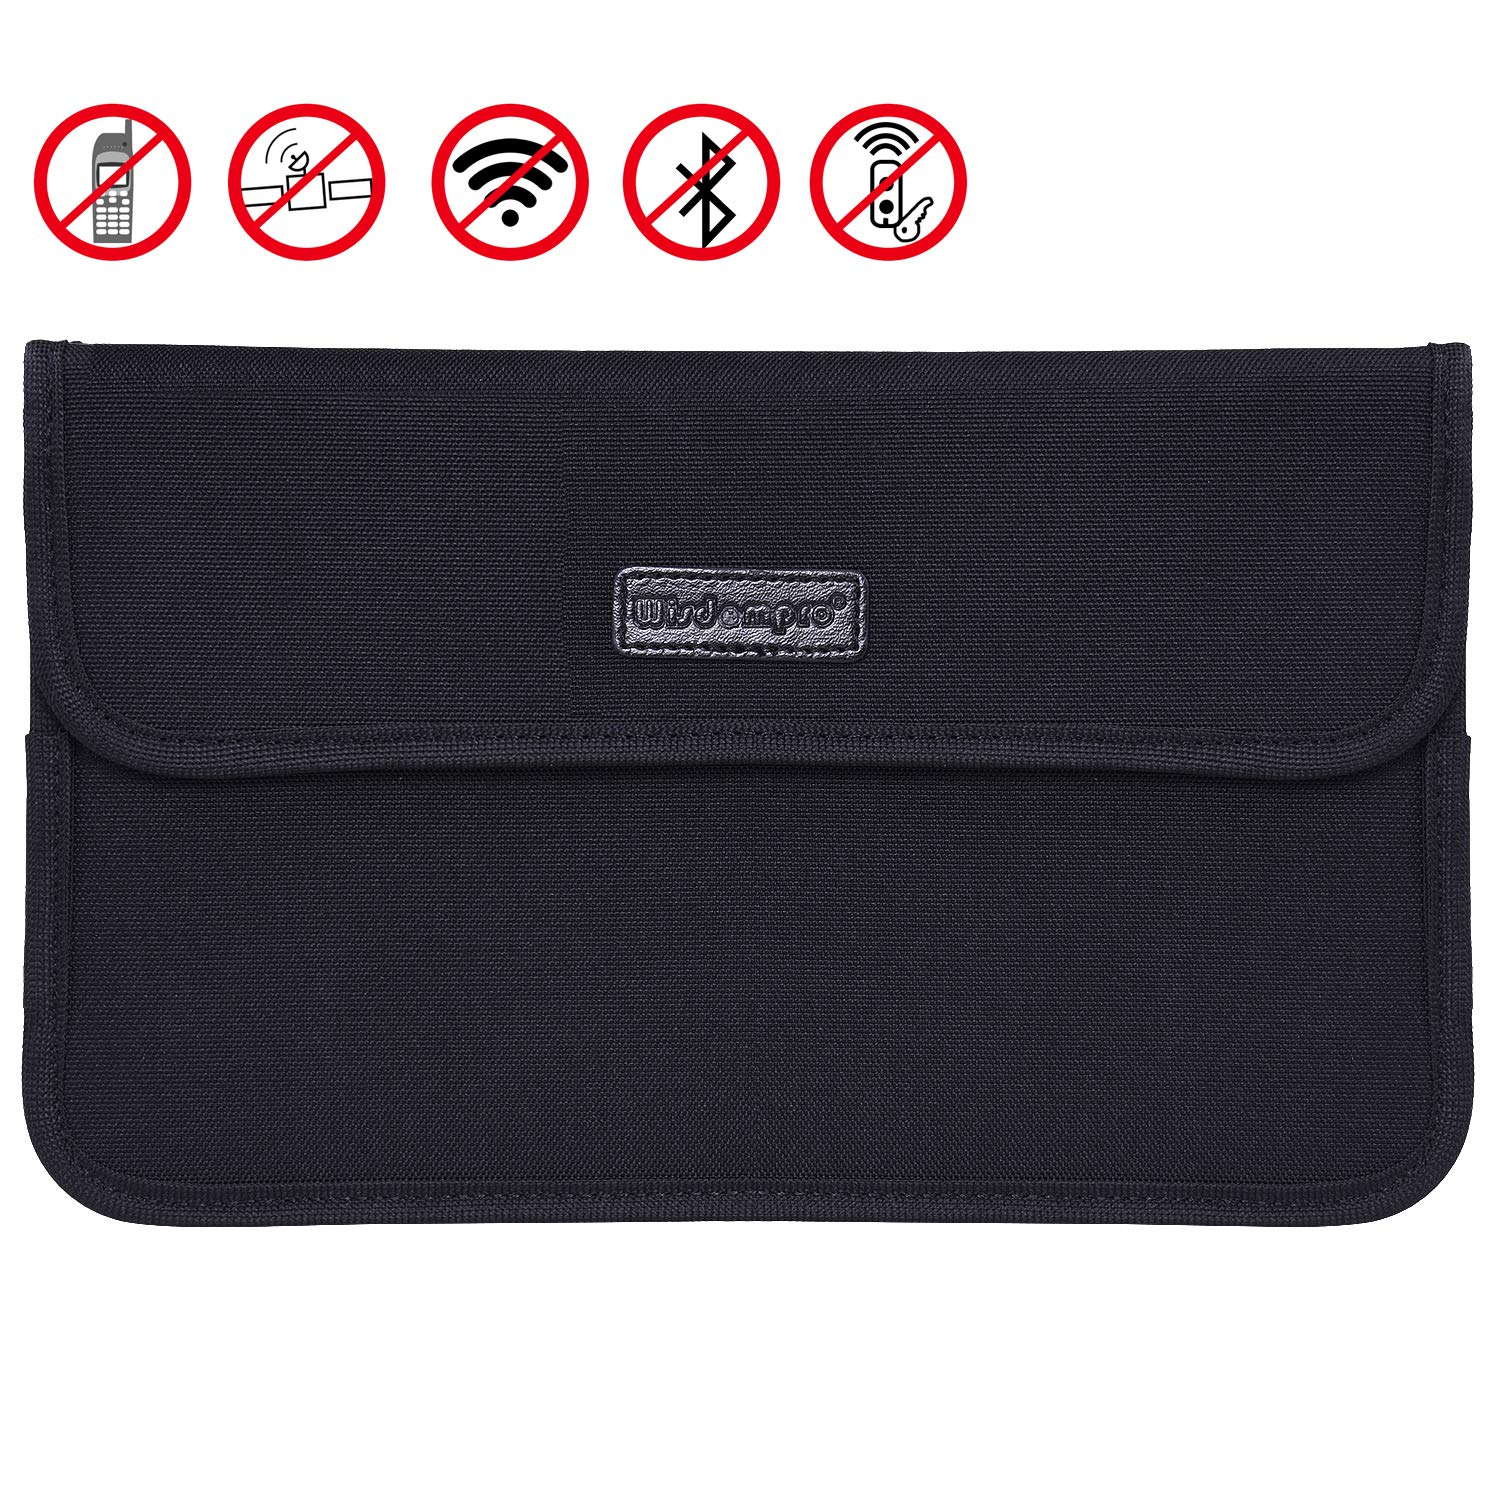 Faraday Bag, Wisdompro RFID Signal Blocking Bag Shielding Pouch Case for Cell Phone Privacy Protection and Car Key FOB 9.5 x 5.5 inches